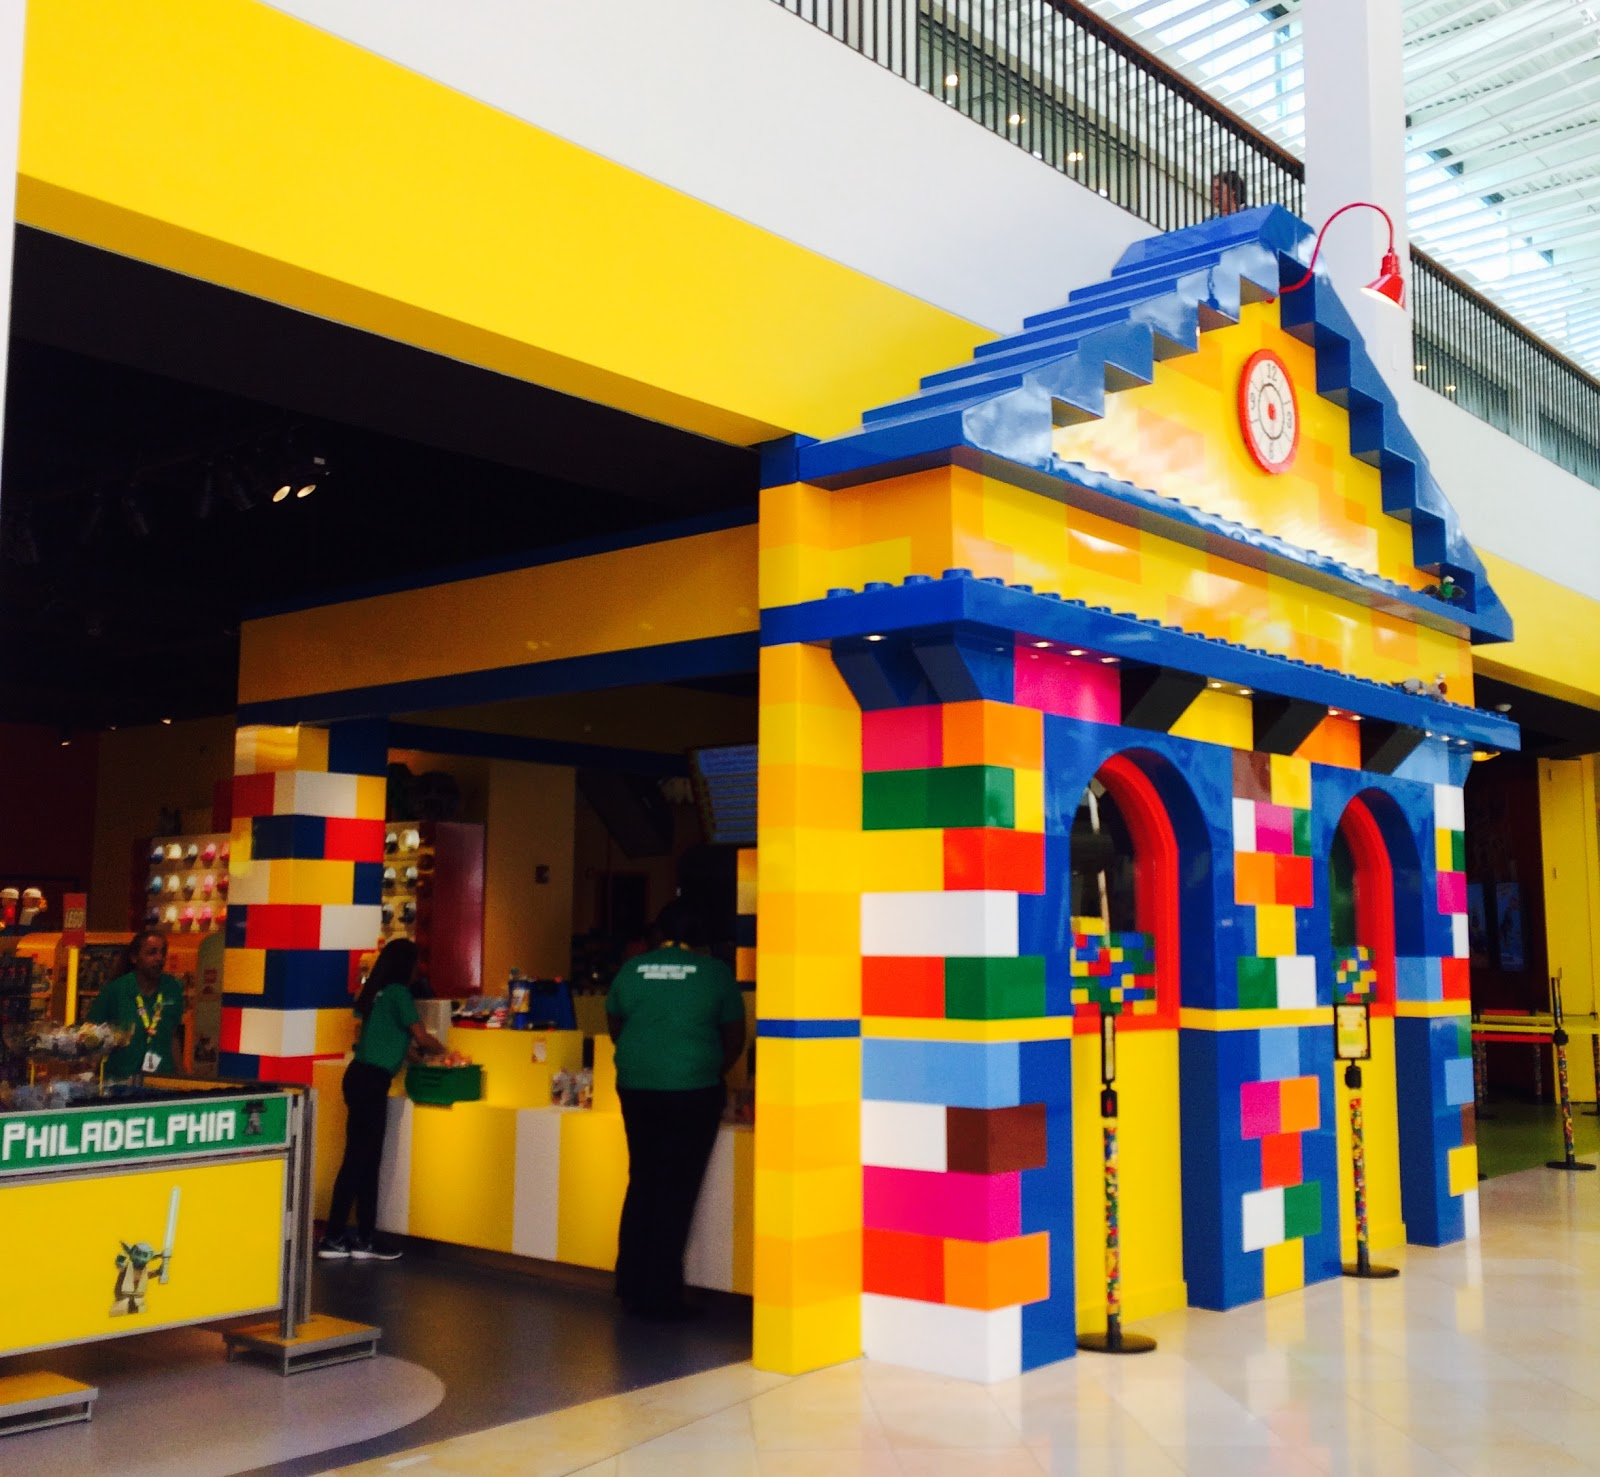 What will i see at legoland discovery center philadelphia